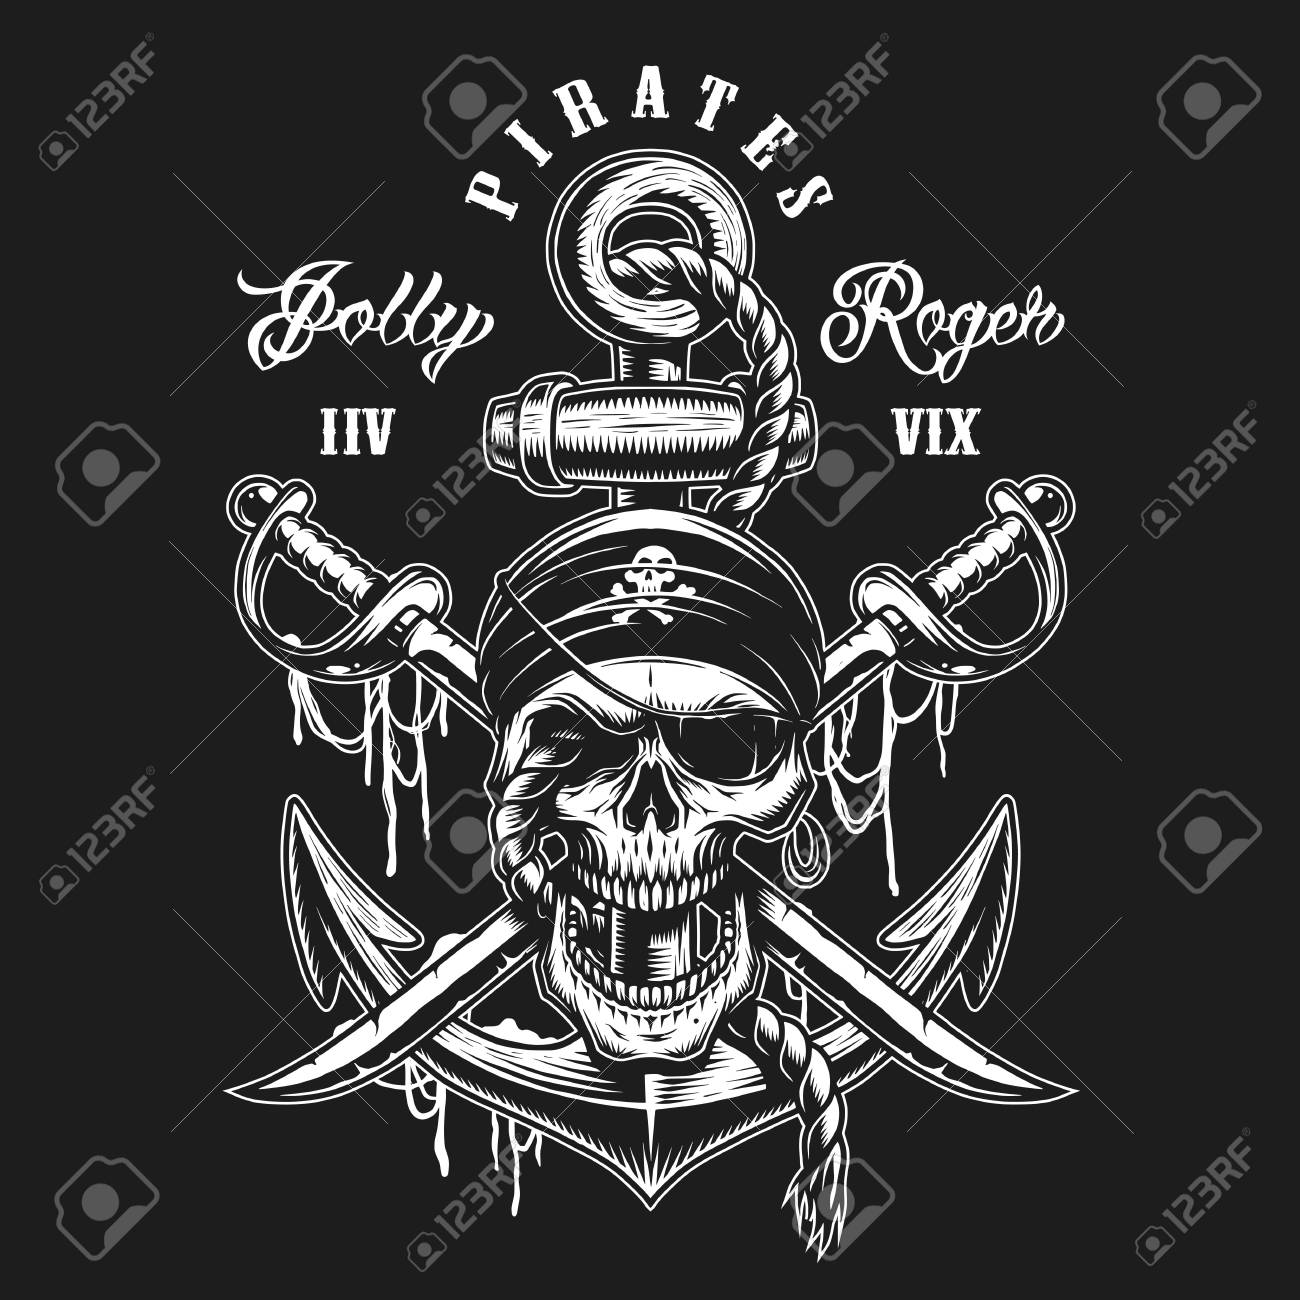 Pirate skull emblem with swords, anchor and rope. On dark background - 89461686